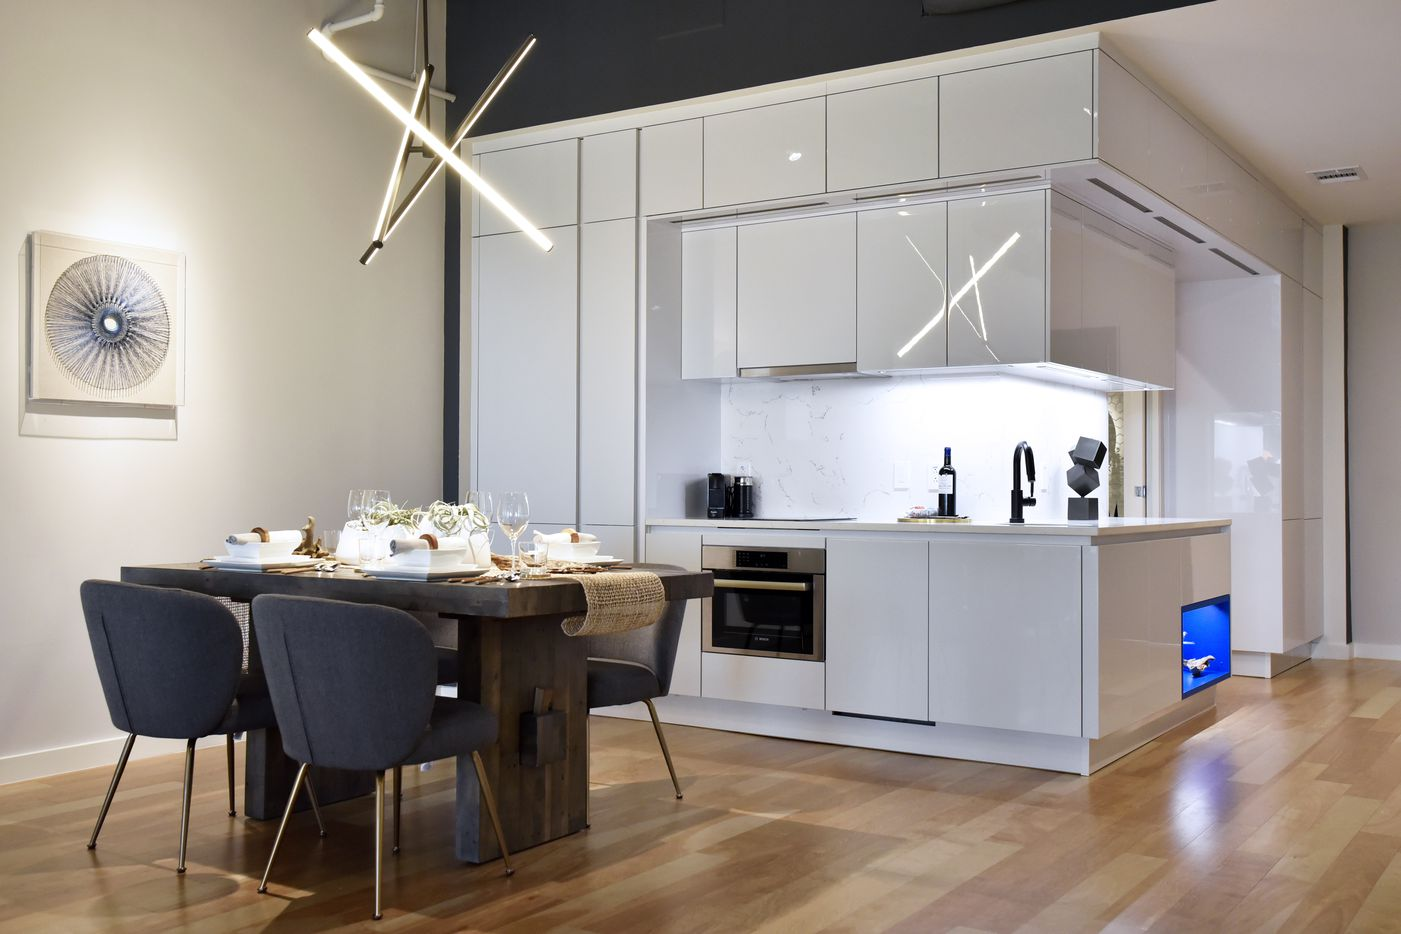 The kitchen area inside a model apartment for Bluelofts urban high-rise facilities in downtown Dallas.